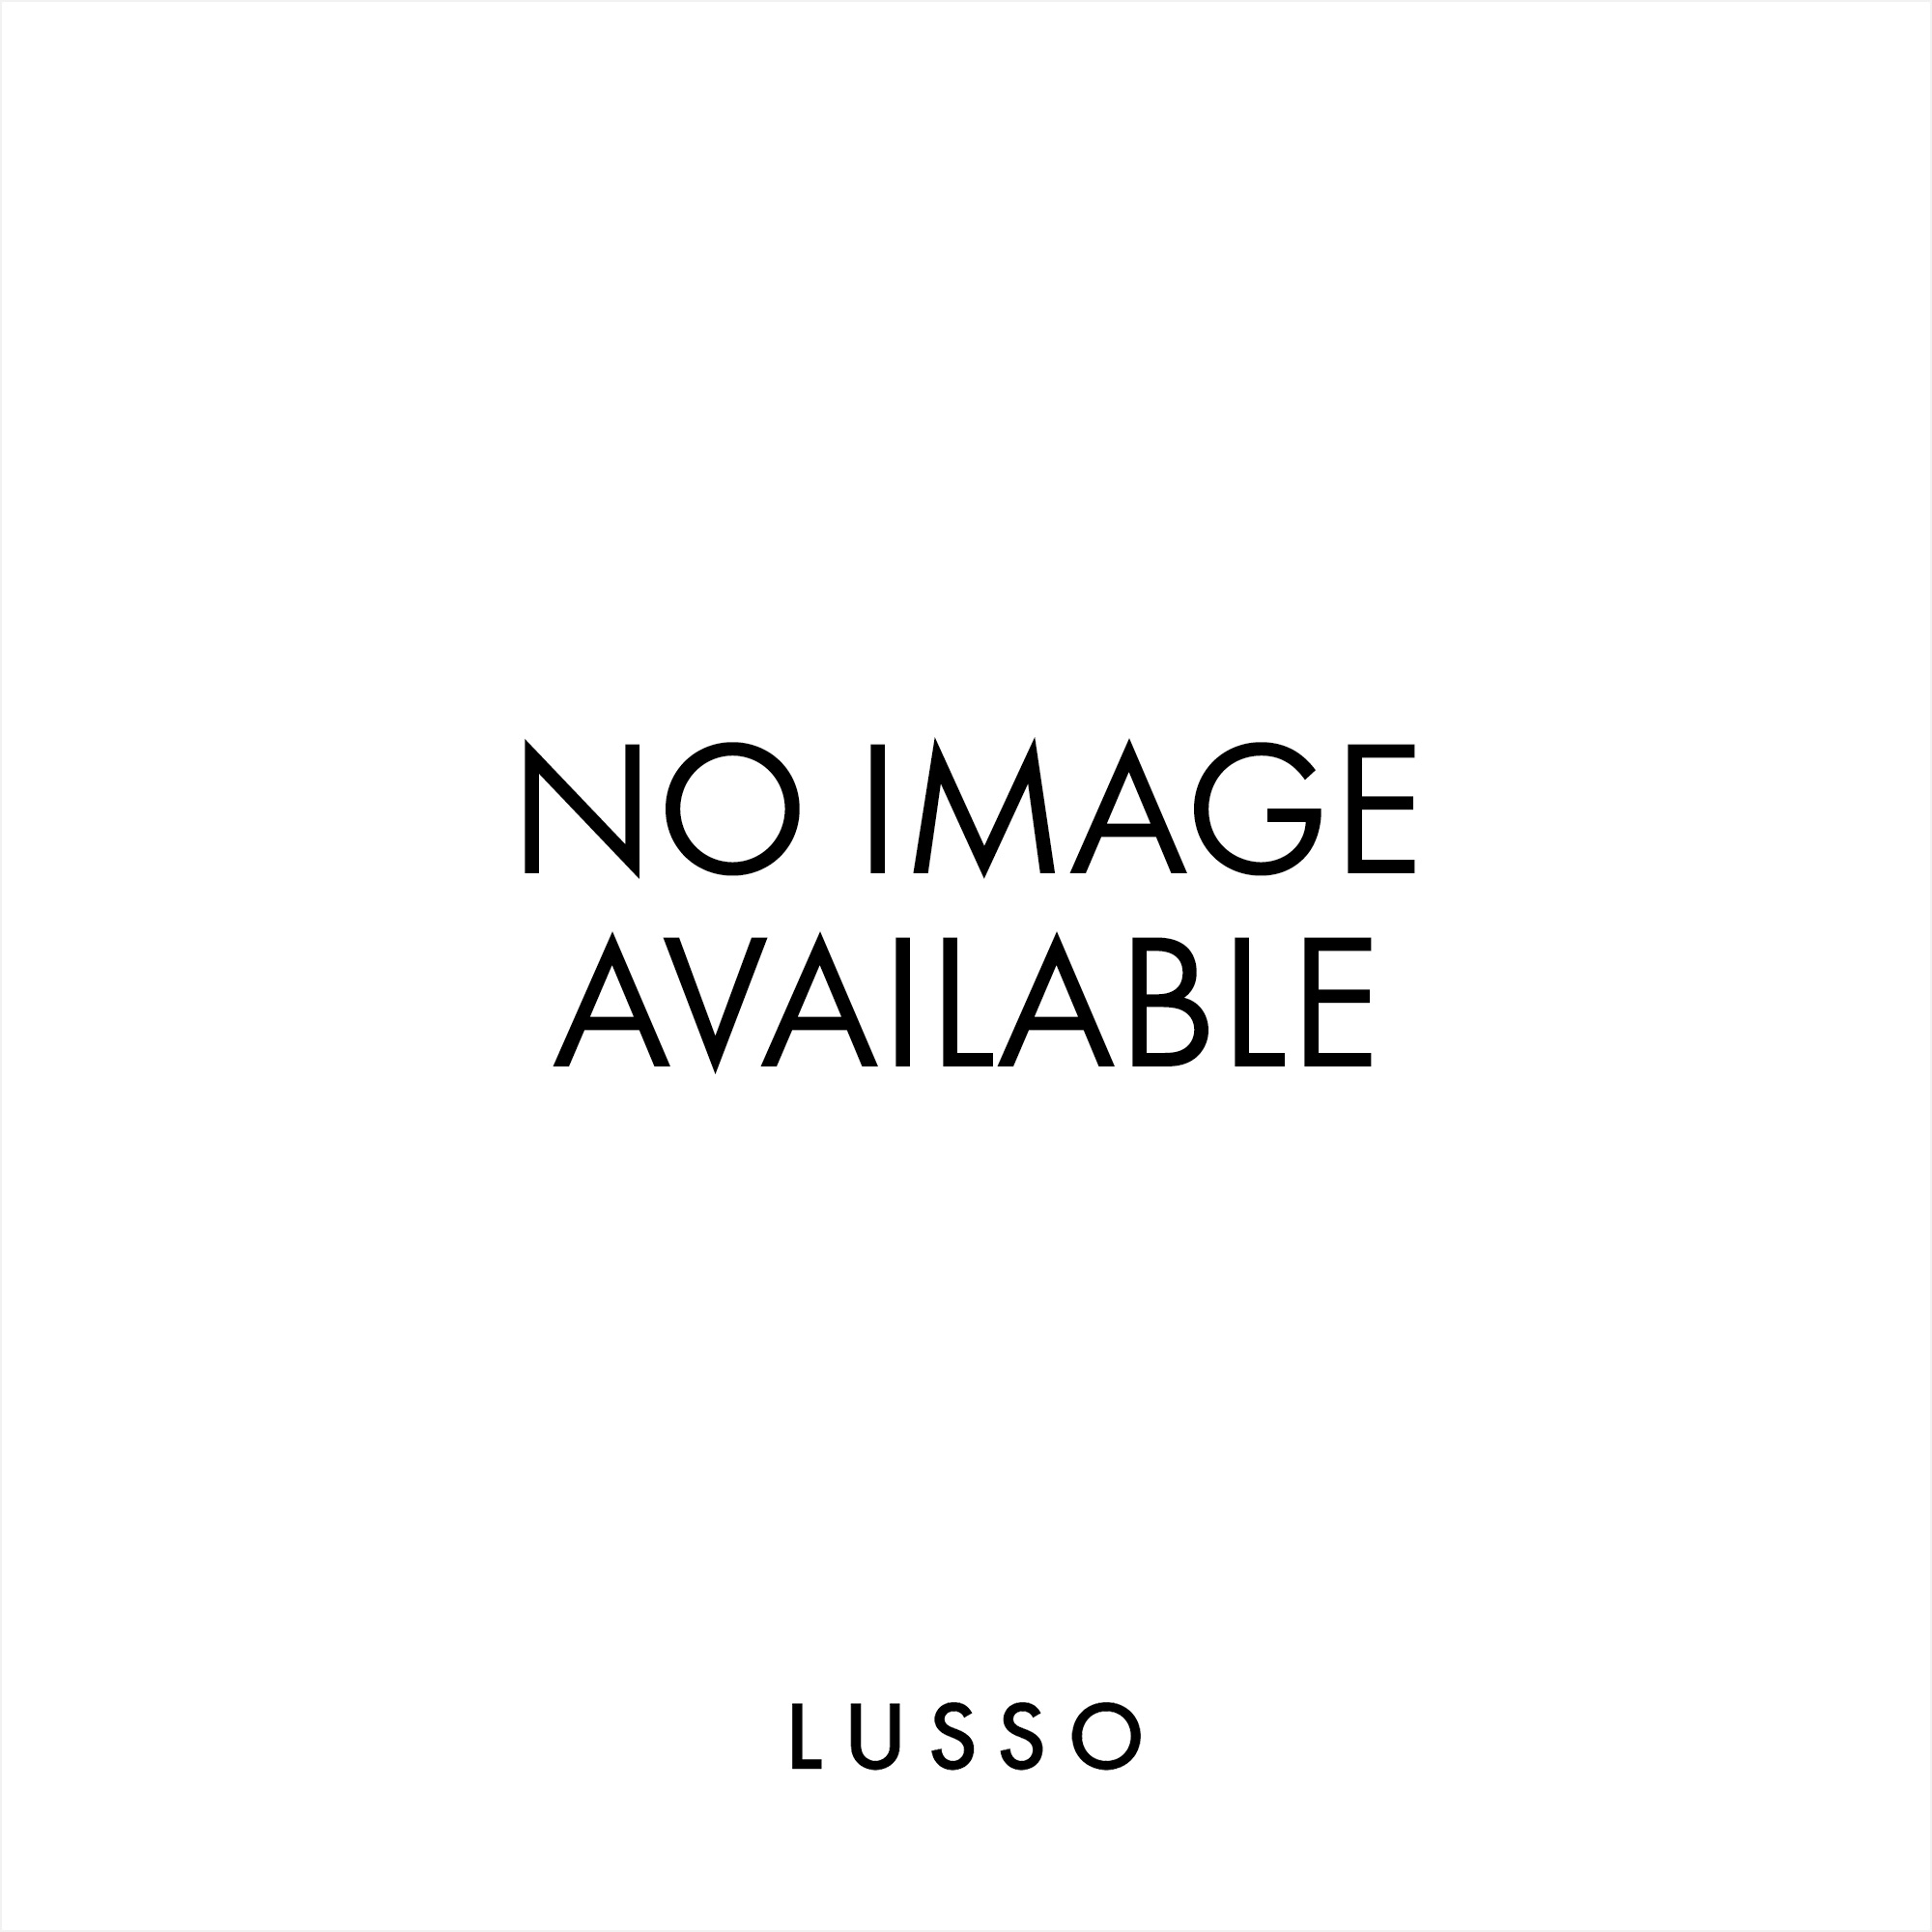 Lusso Stone Moritz Traditional Stone Resin Solid Surface Freestanding Bath 1800